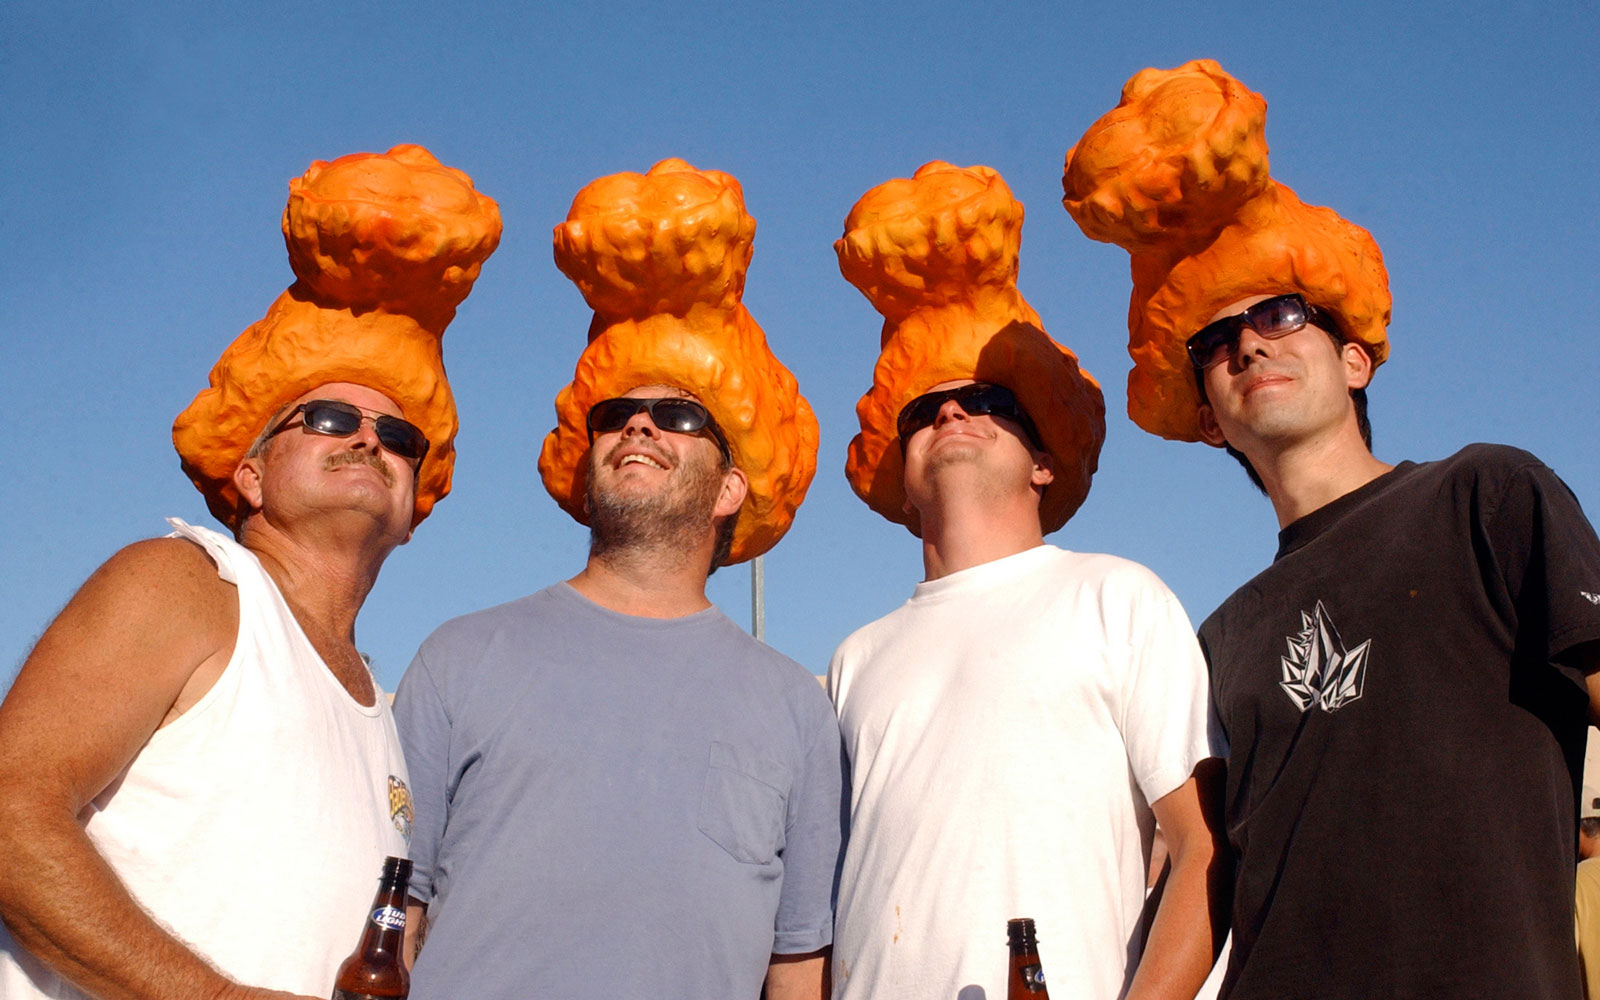 Buffalo's Annual National Chicken Wing Festival